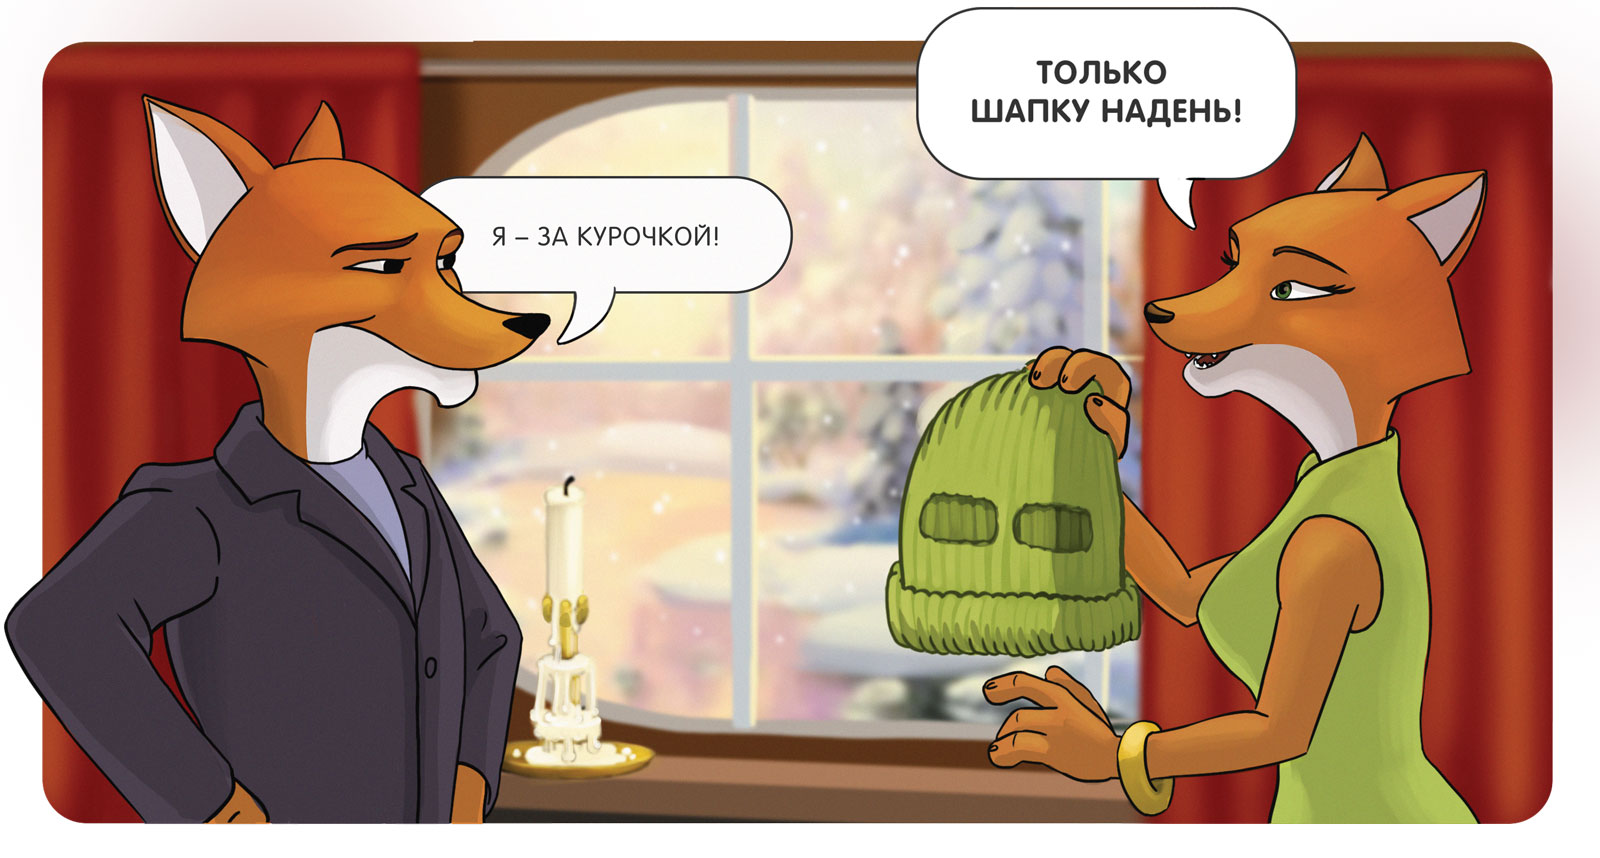 12_december_Troekurovo_smartians